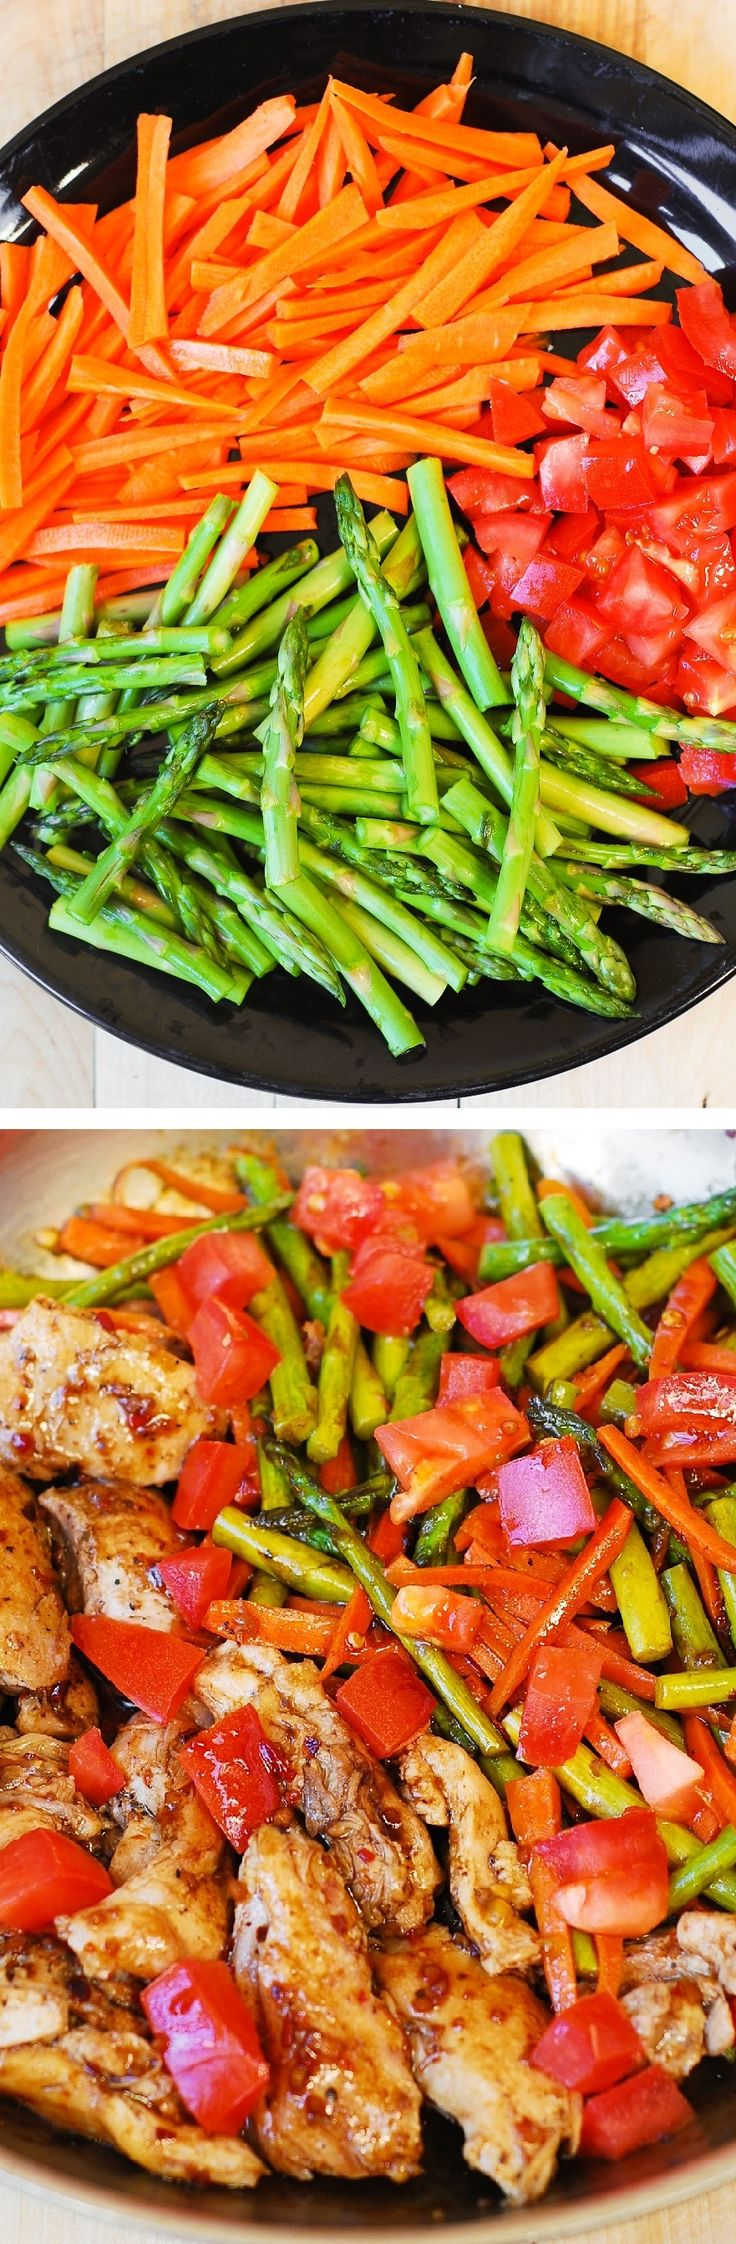 Balsamic Chicken w/ Asparagus & Tomatoes –Made 1/2/2016 RG DELICIOUS , healthy, low fat, low cholesterol, low calorie meal, packed with fiber (vegetables) and protein (chicken). #BHG #sponsored